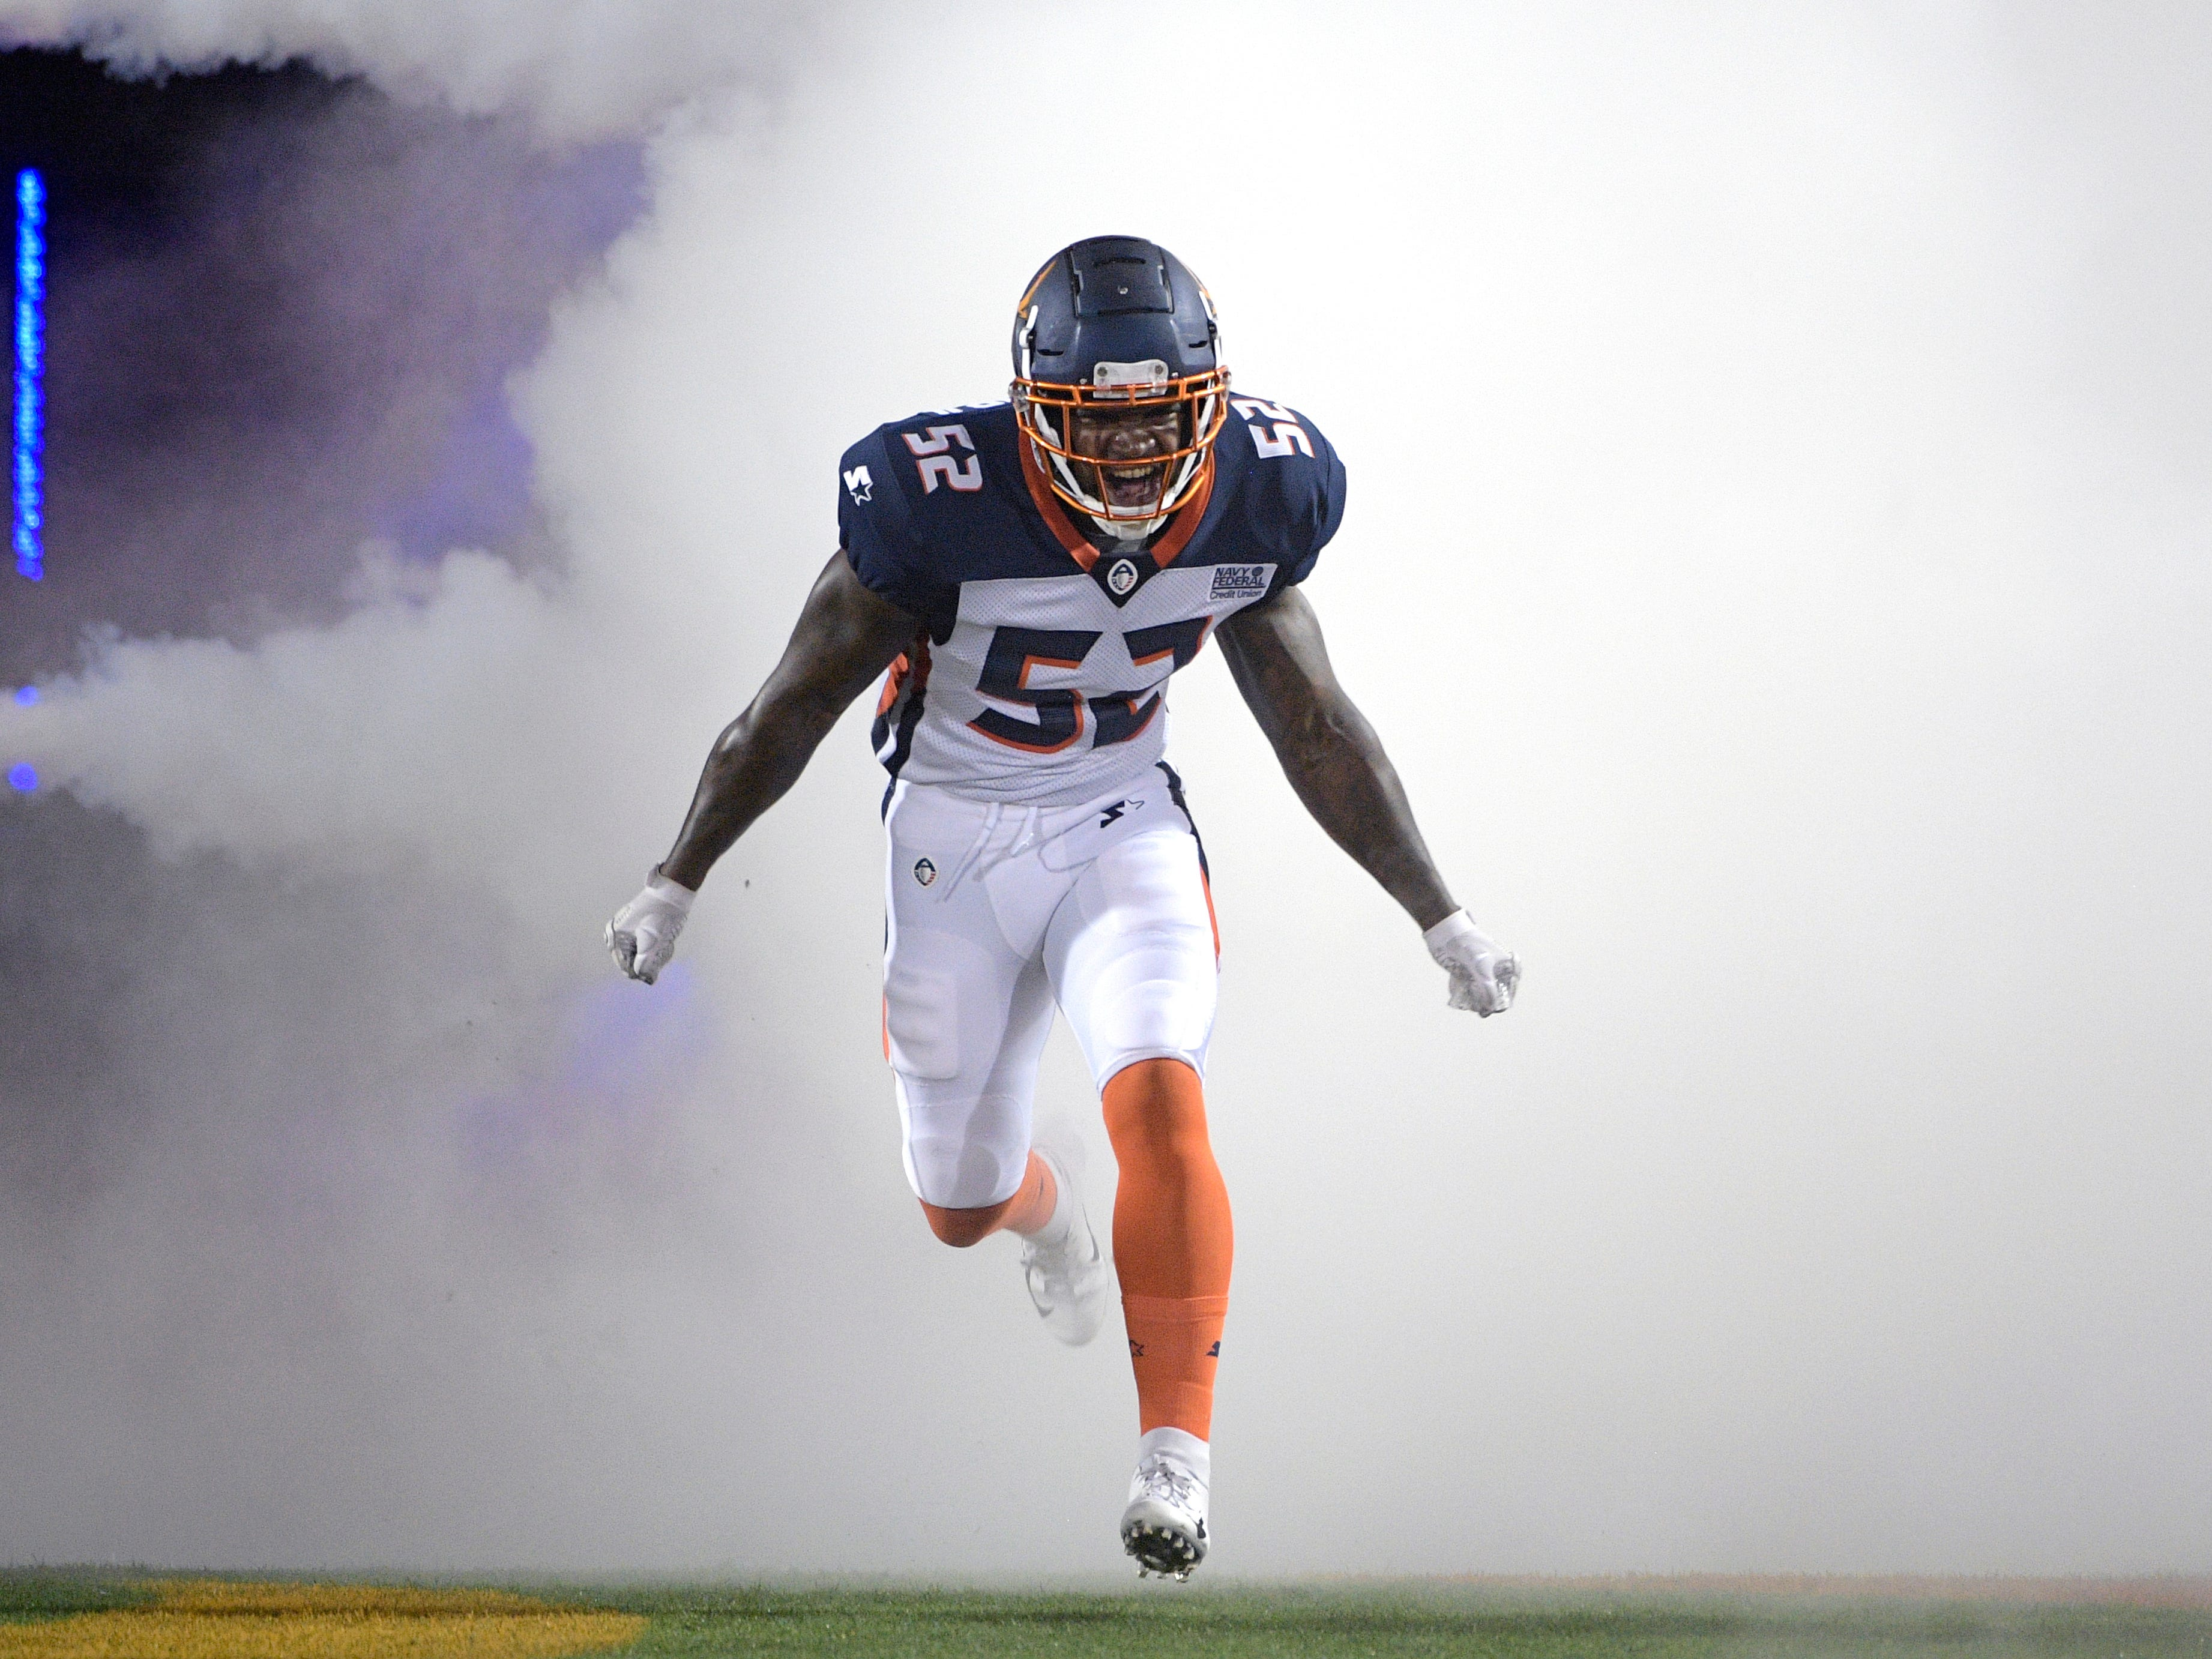 Orlando Apollos linebacker Reggie Northrup II runs onto the field during player introductions before an AAF  game against the Atlanta Legends  in Orlando.